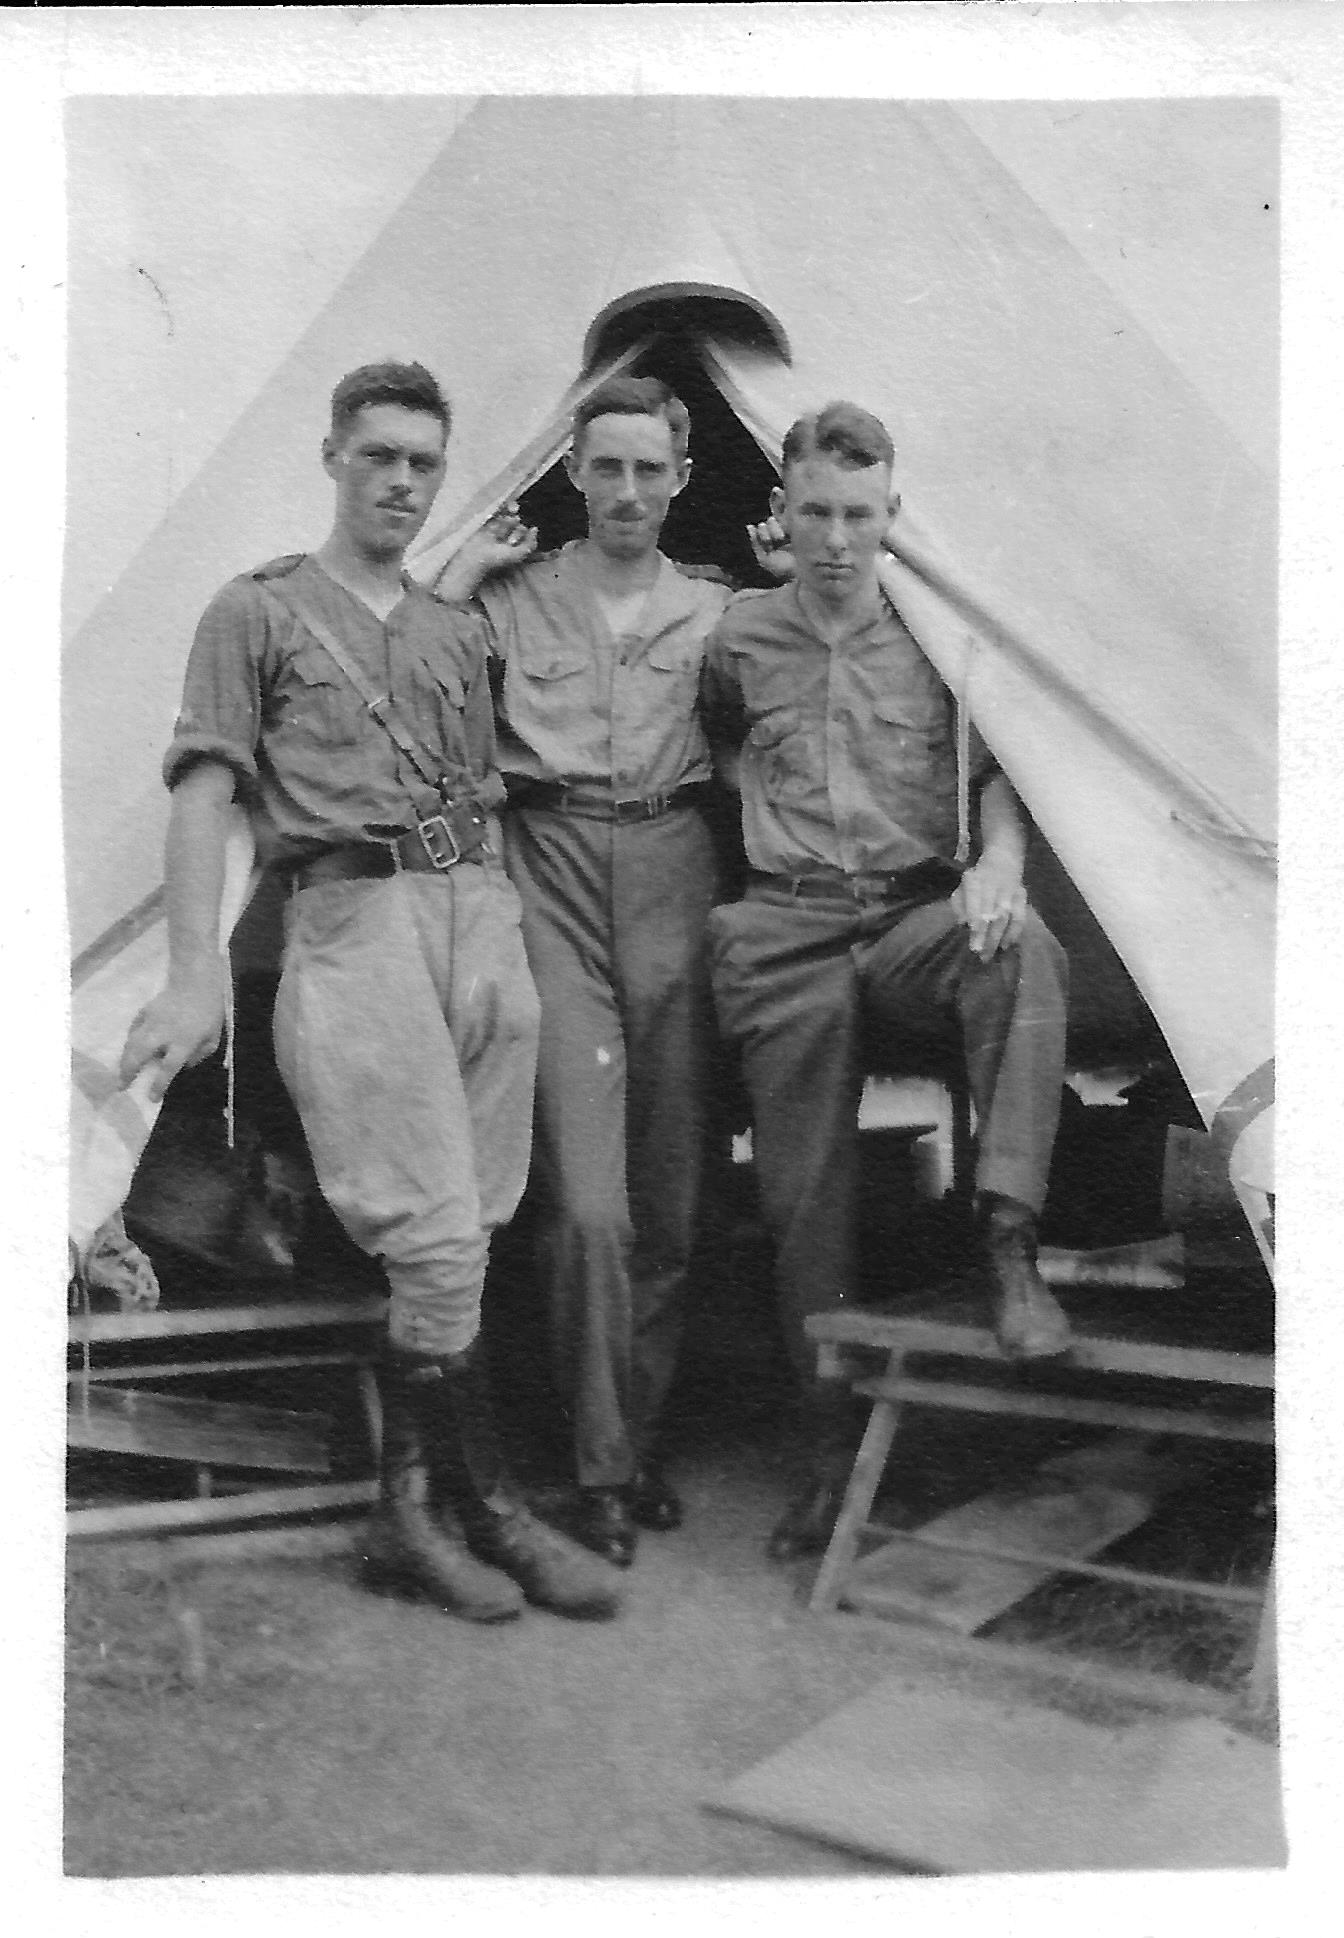 Group Photo– Left to Right: George Ewens, Stanley Campbell (his brother in law), and James Robb.  In training.